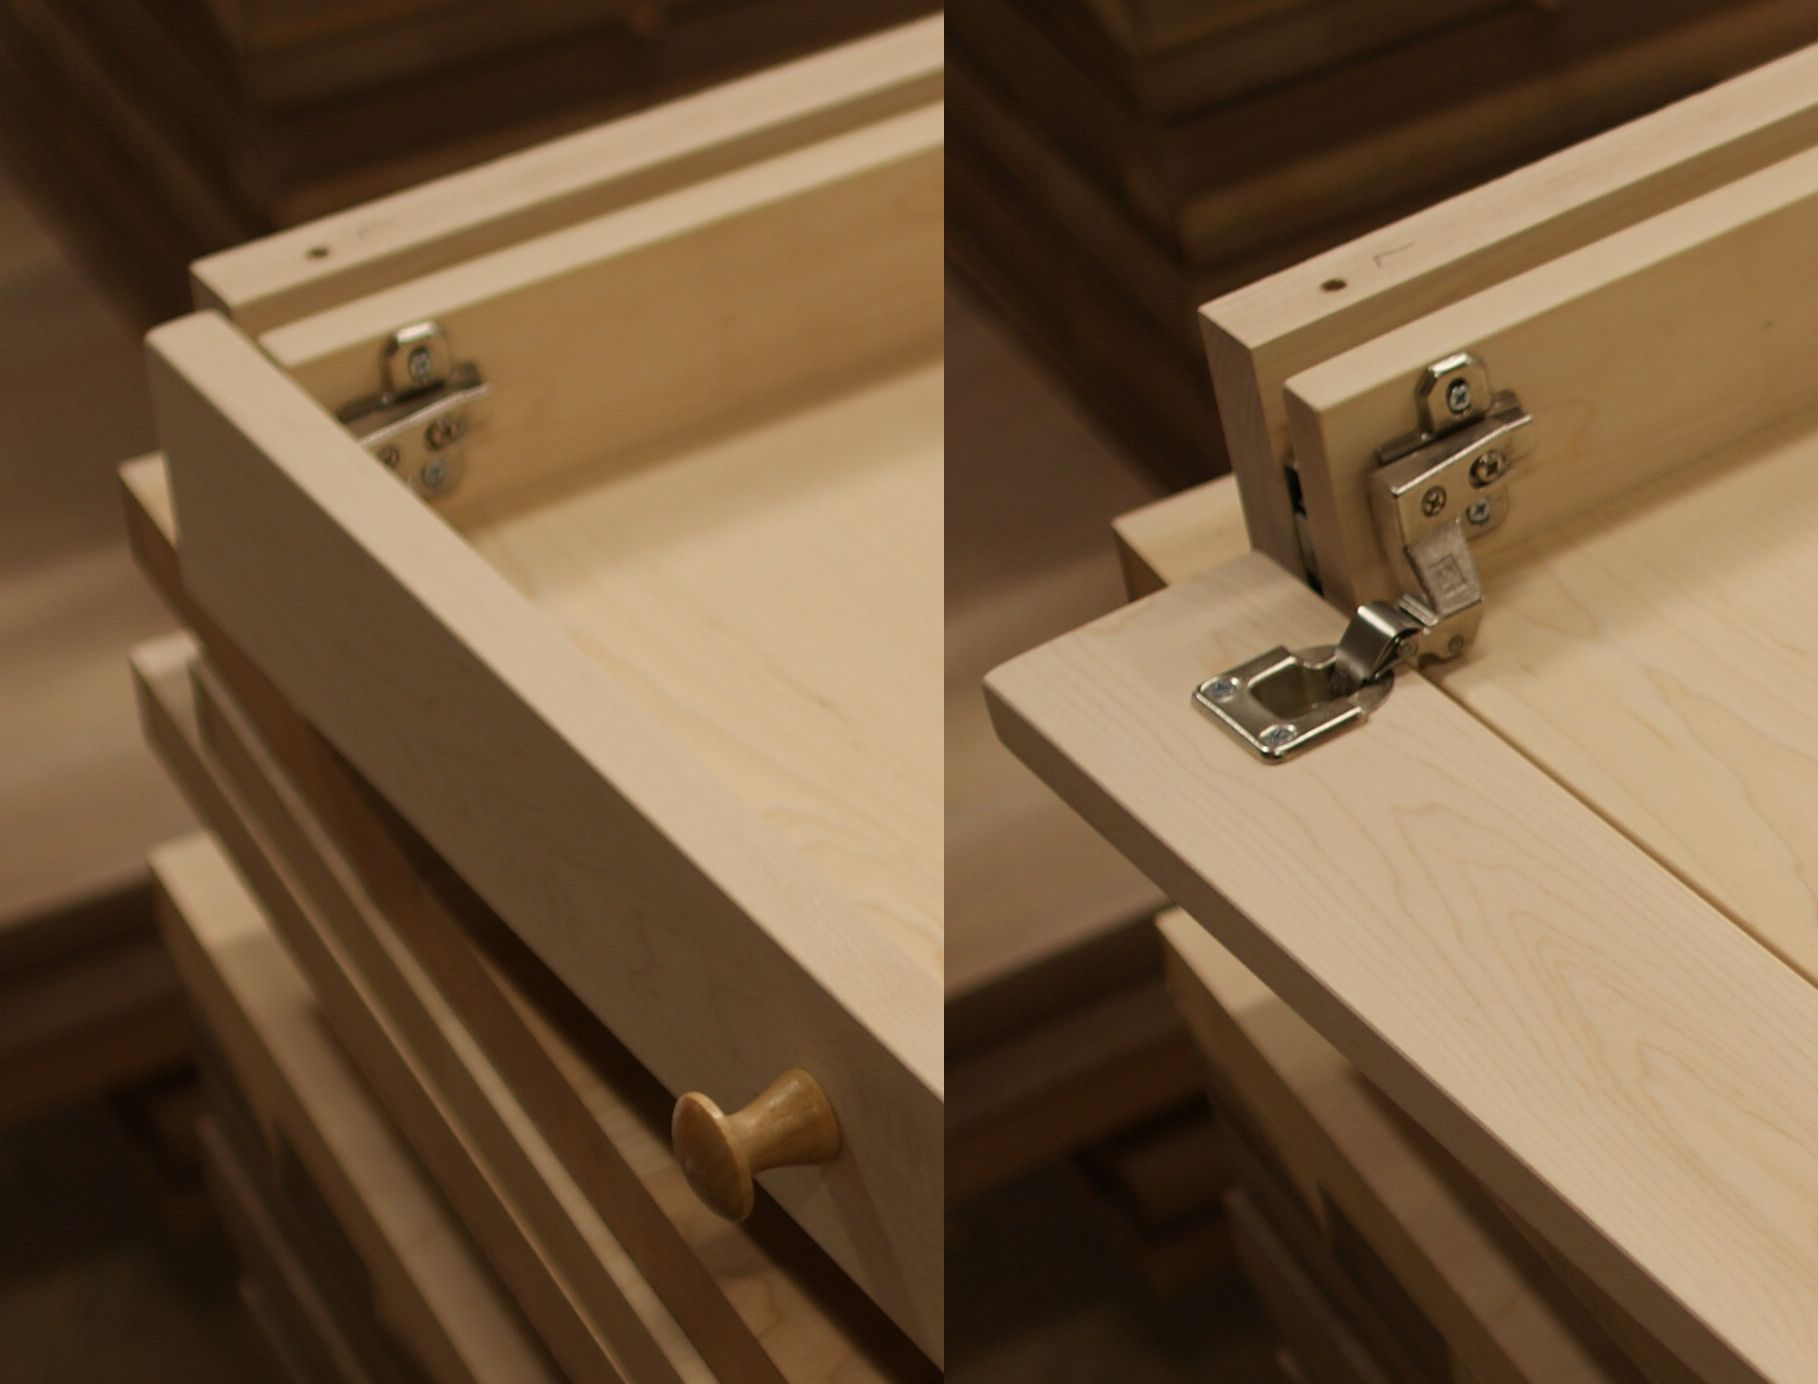 Test Fitting A Shiny New Hinge For Drawer Front Keyboard Pull Out